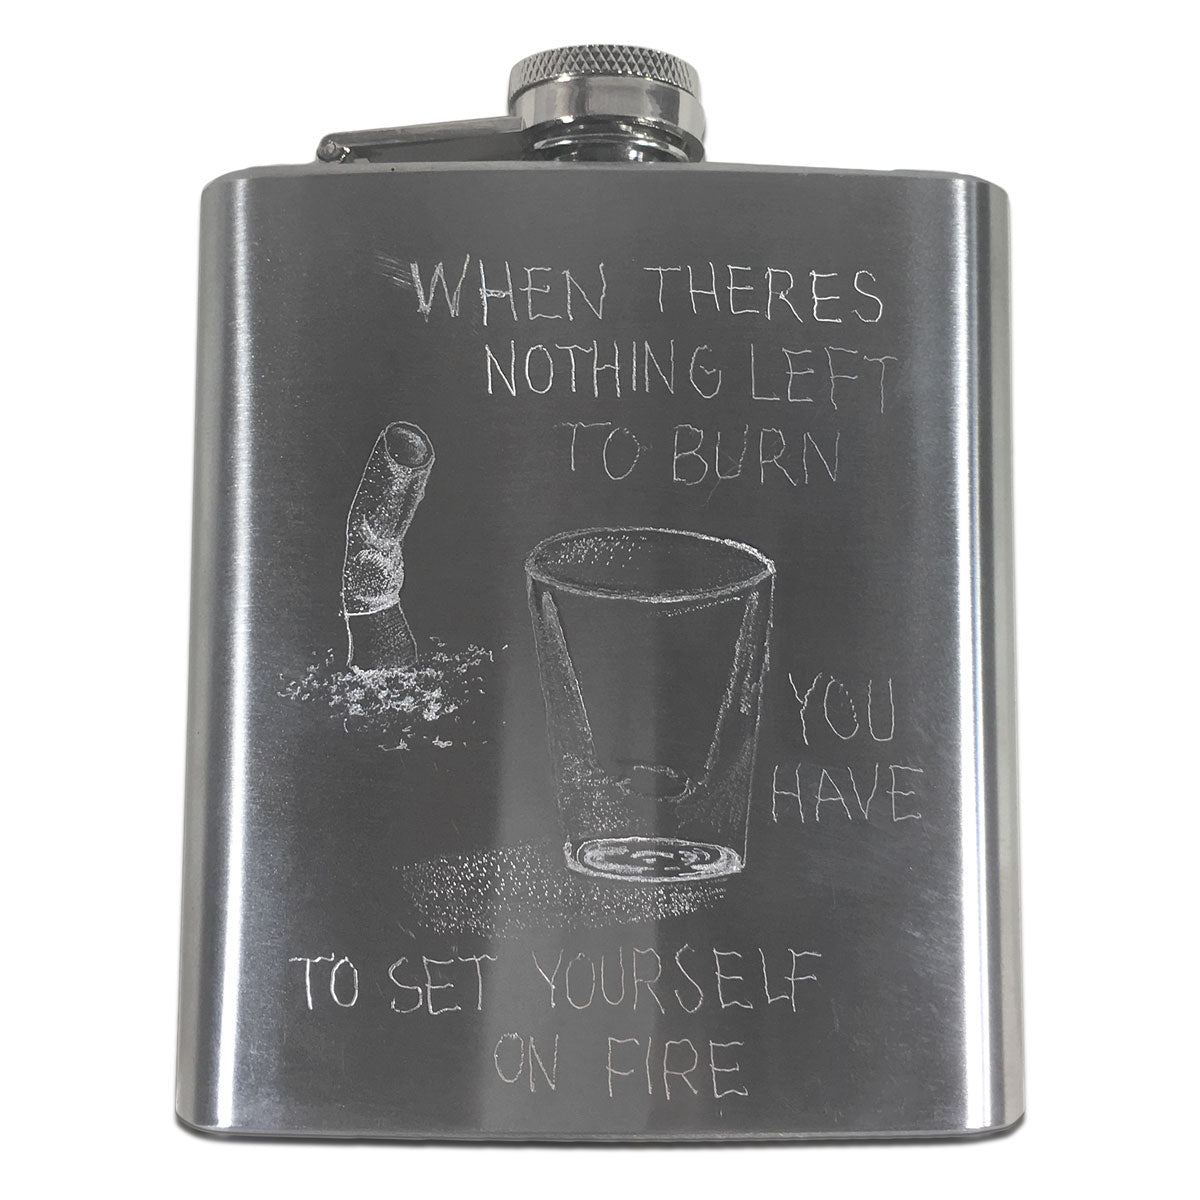 Set Yourself On Fire Flask